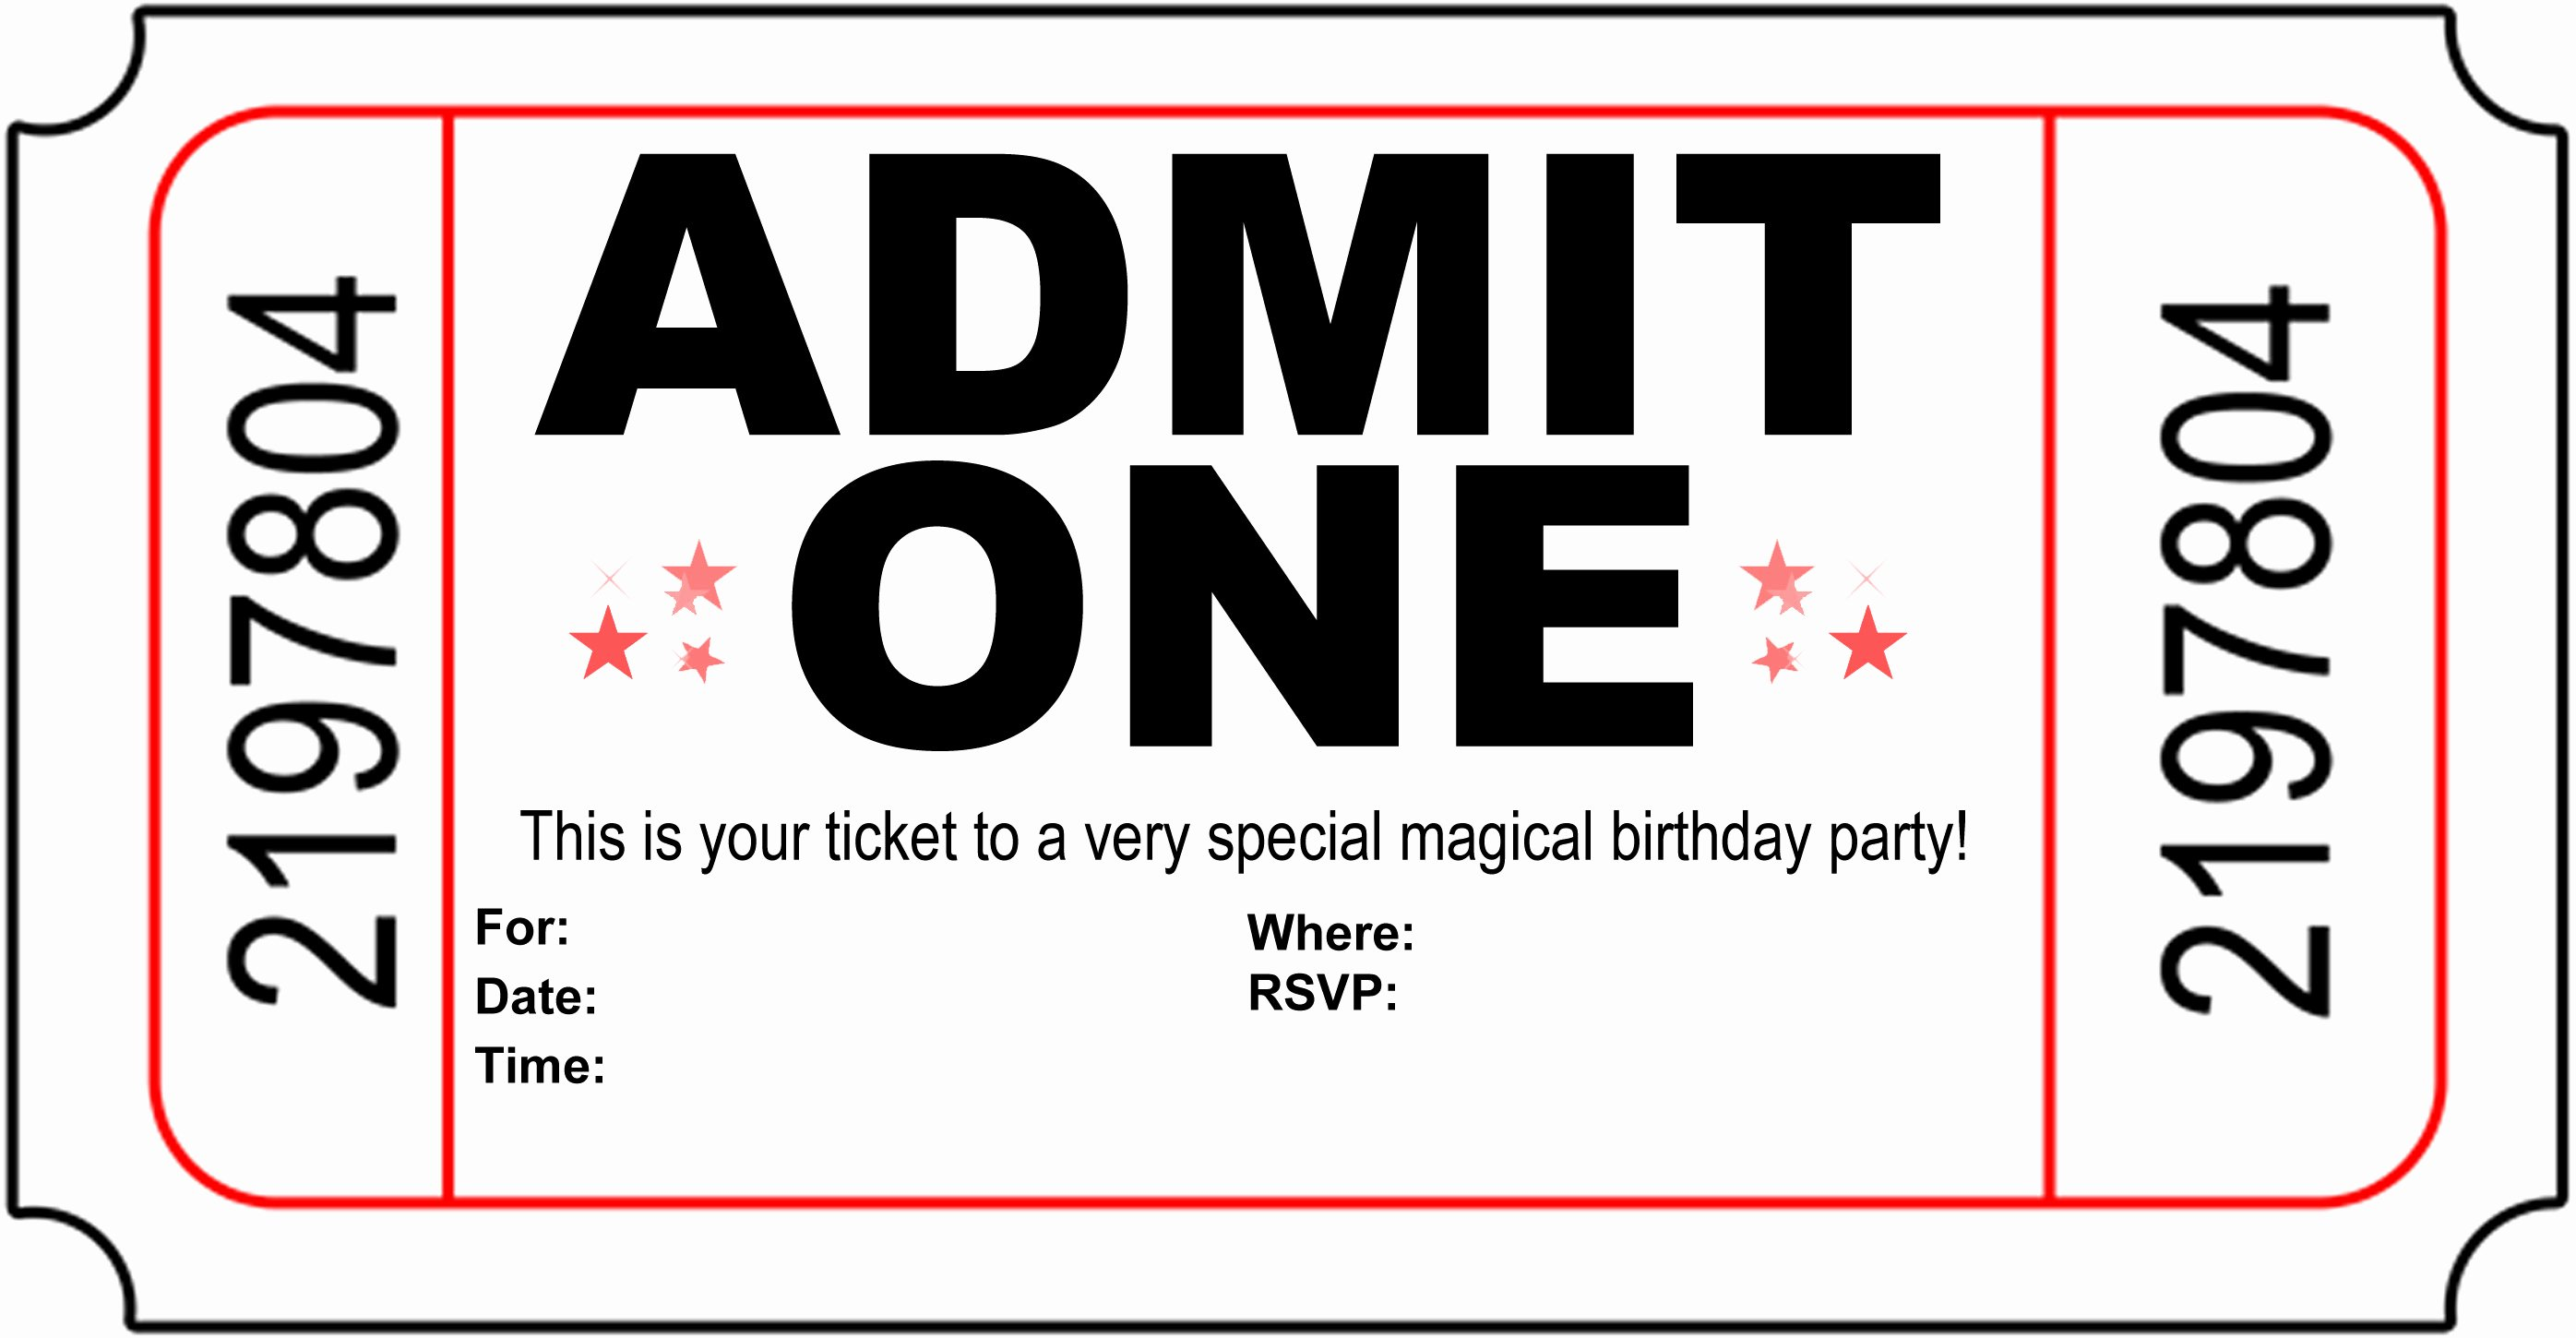 Free Printable Anniversary Invitations Lovely Free Printable Birthday Party Invitations Kansas Magician